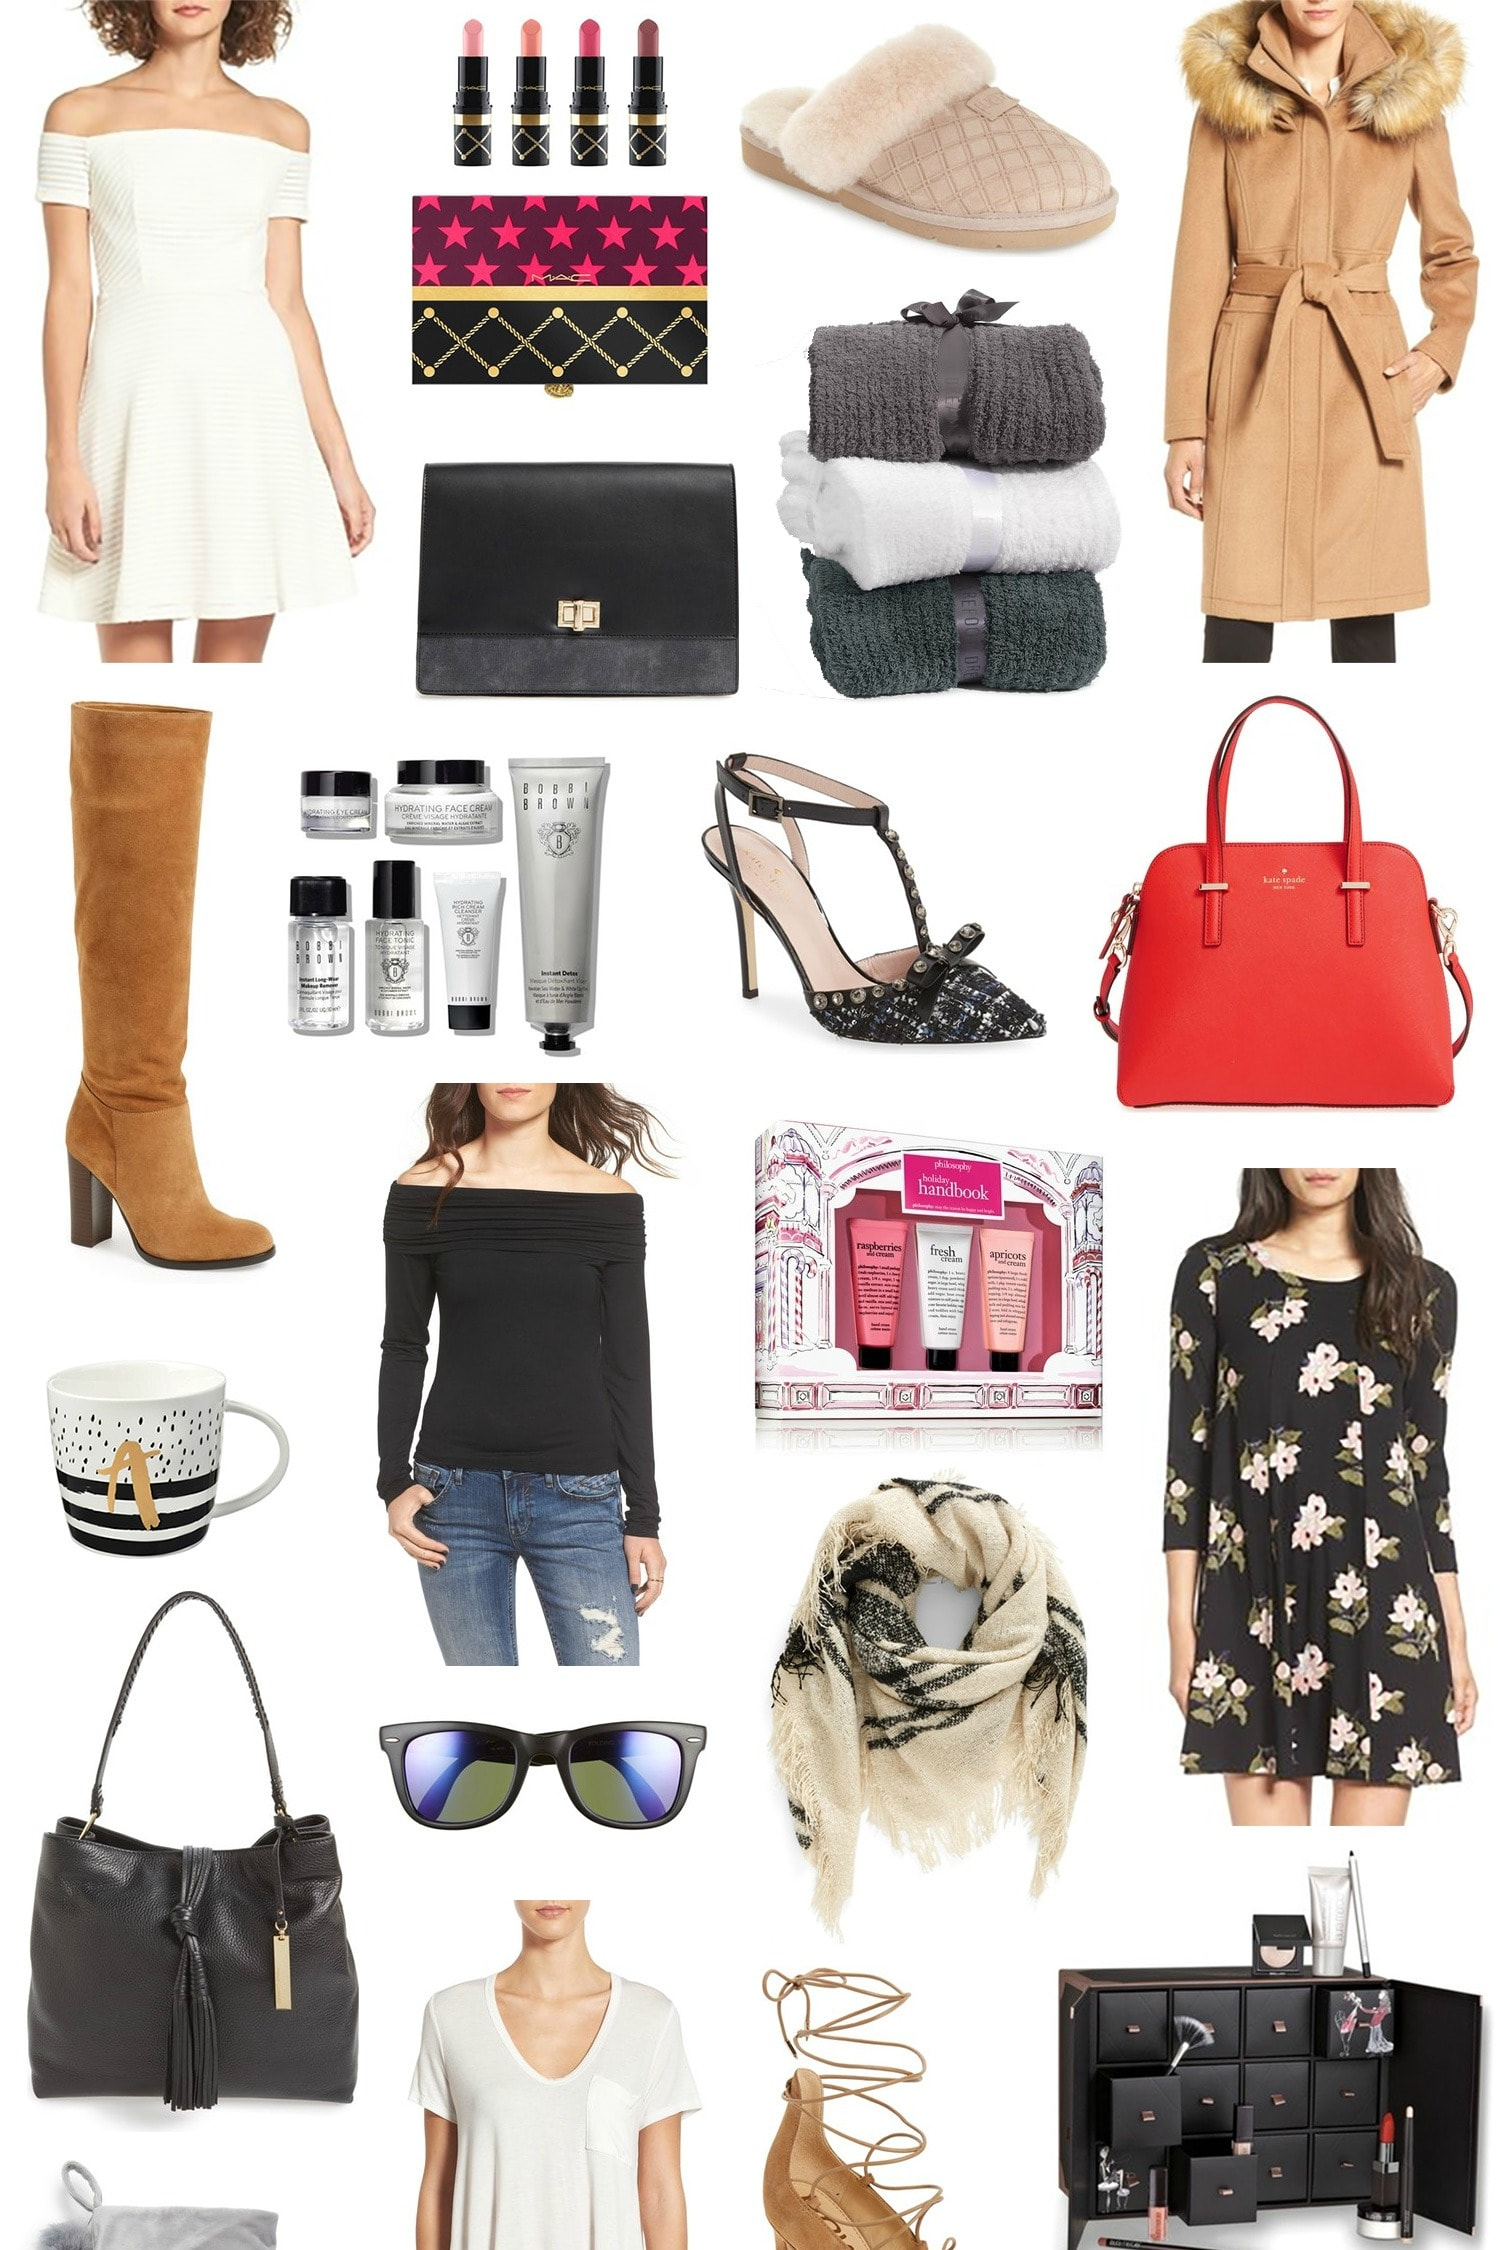 Best Deals from The Nordstrom Half-Yearly Sale | Ashley Brooke Nicholas